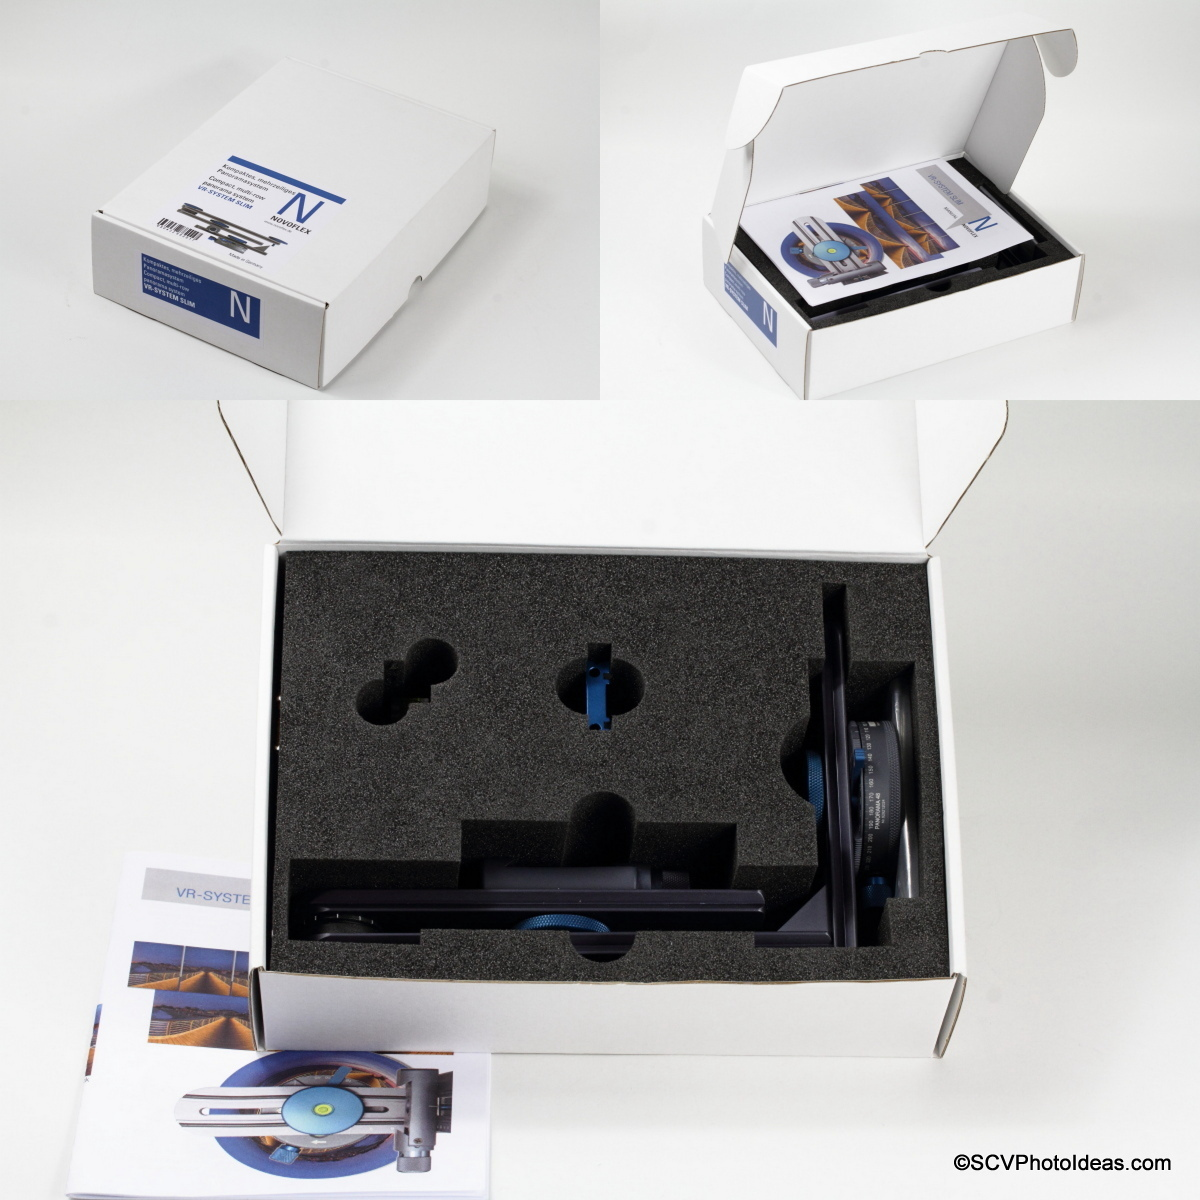 Novoflex VR-System Slim Panorama Head packaging